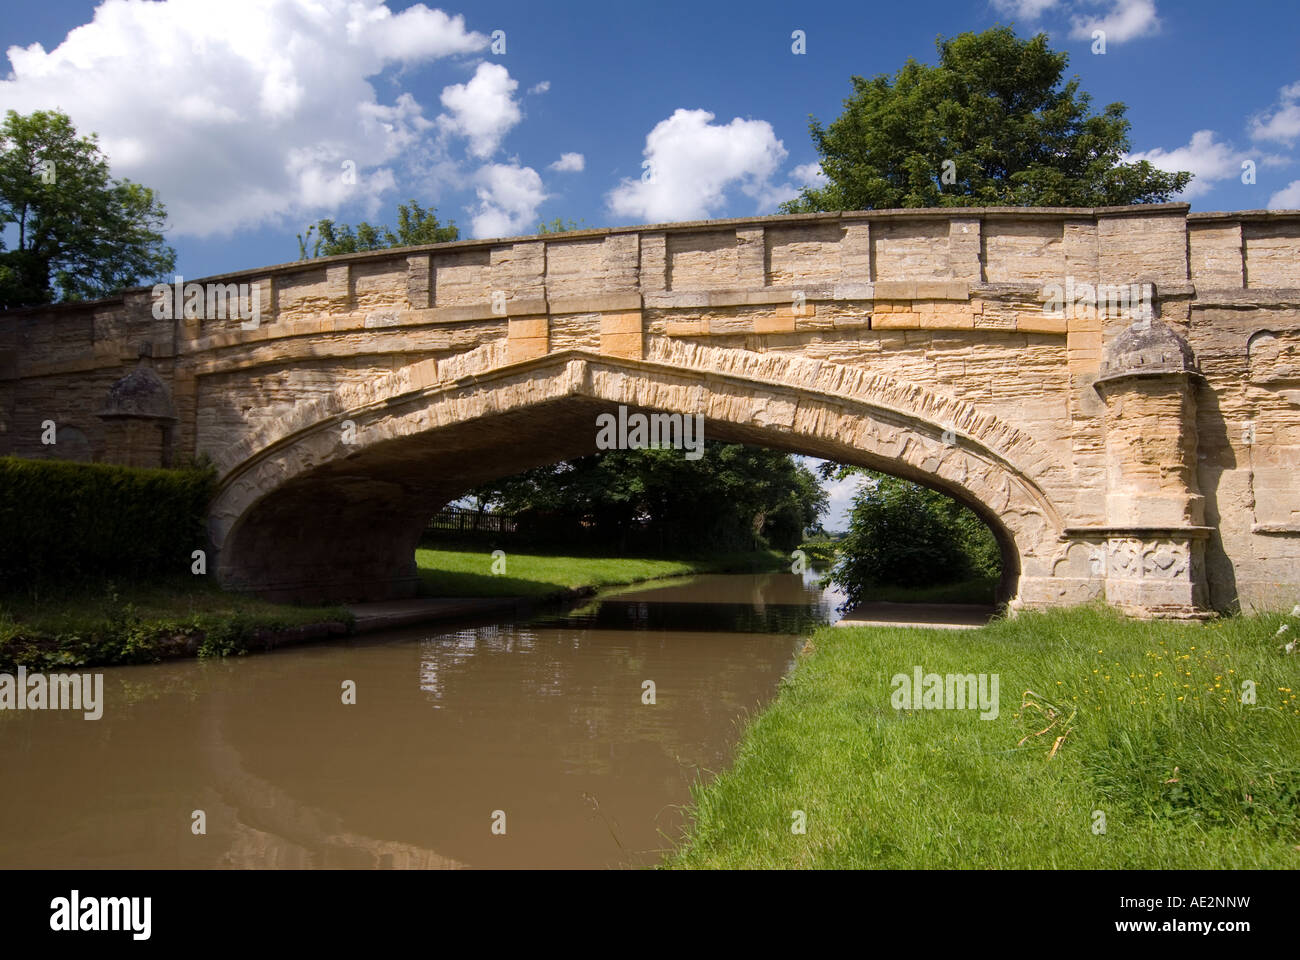 Traditional looking stone bridge at Cosgrove on the Grand Union Canal. - Stock Image